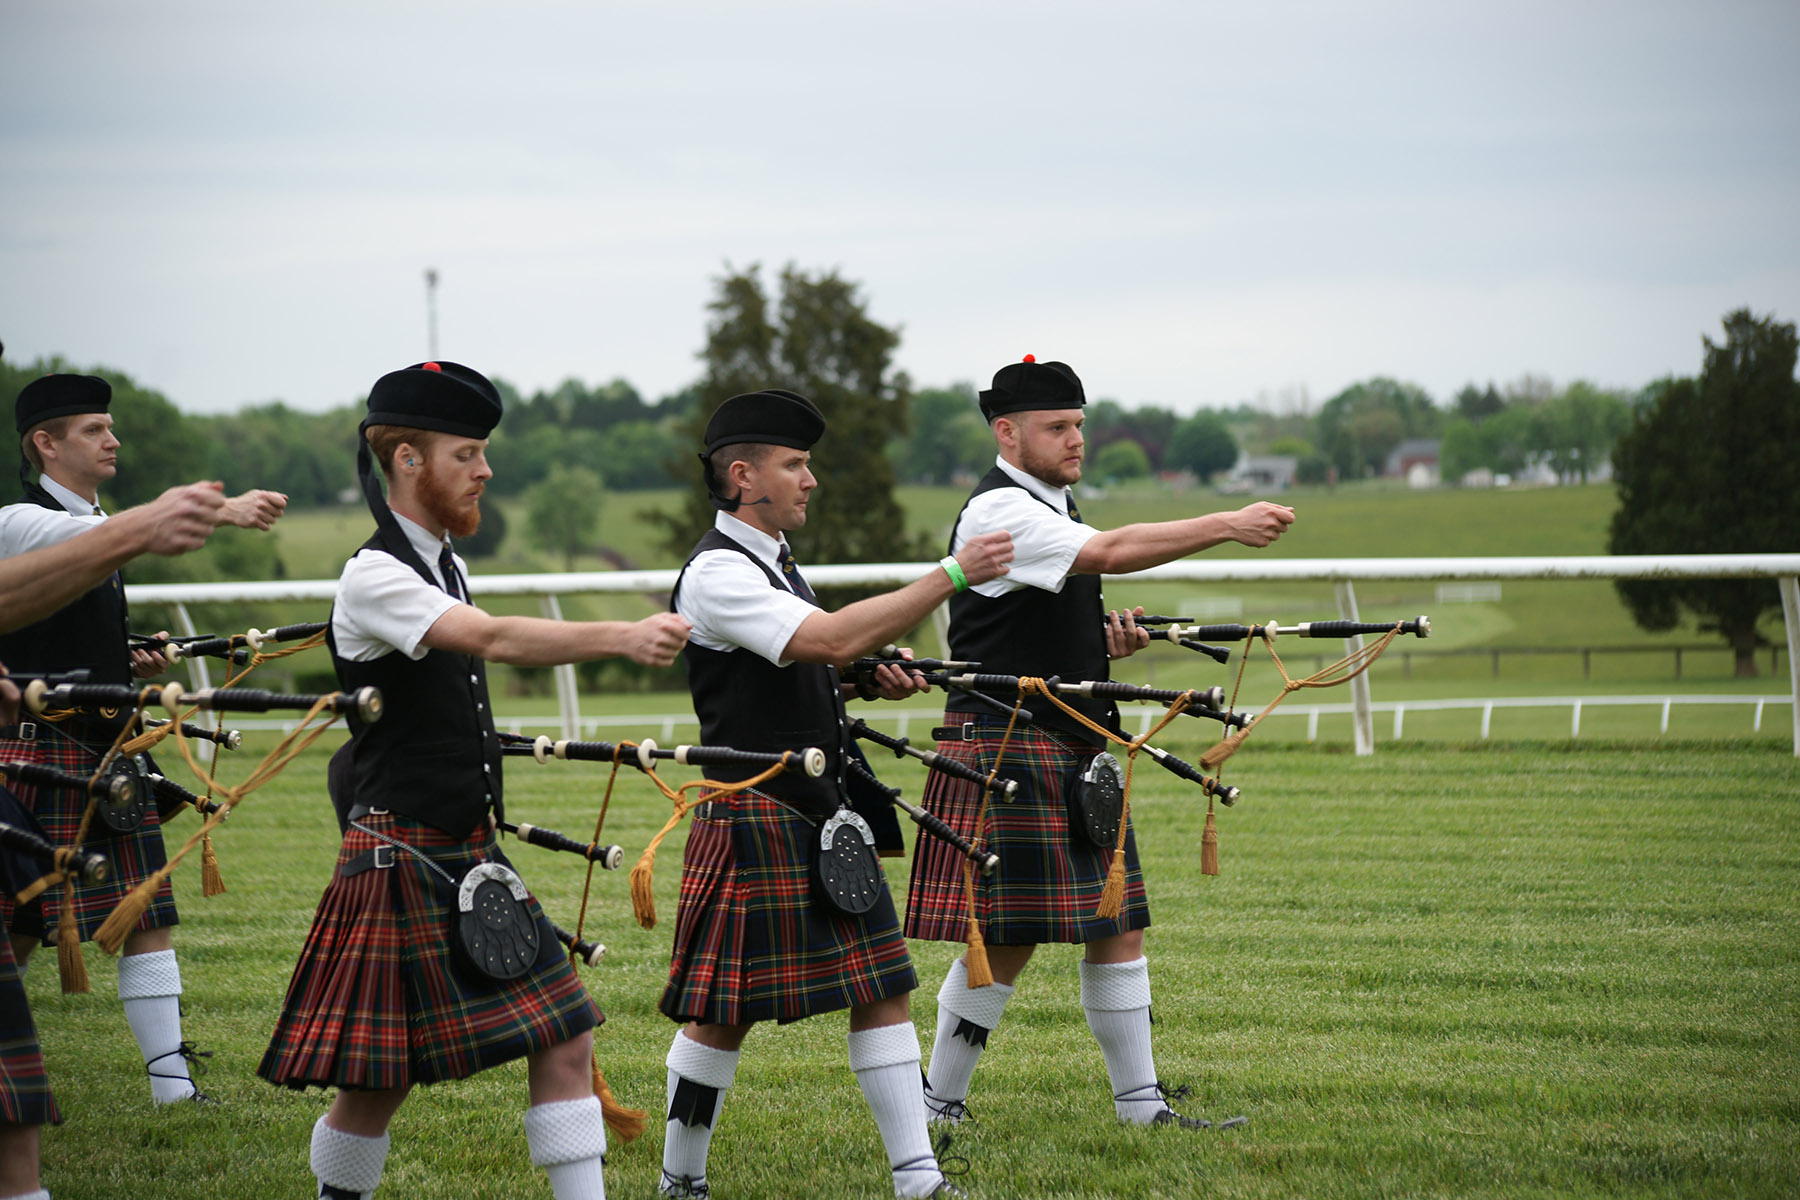 The annual Scottish Games, held in Fair Hill, celebrate Celtic heritage with events, cuisine and fun!